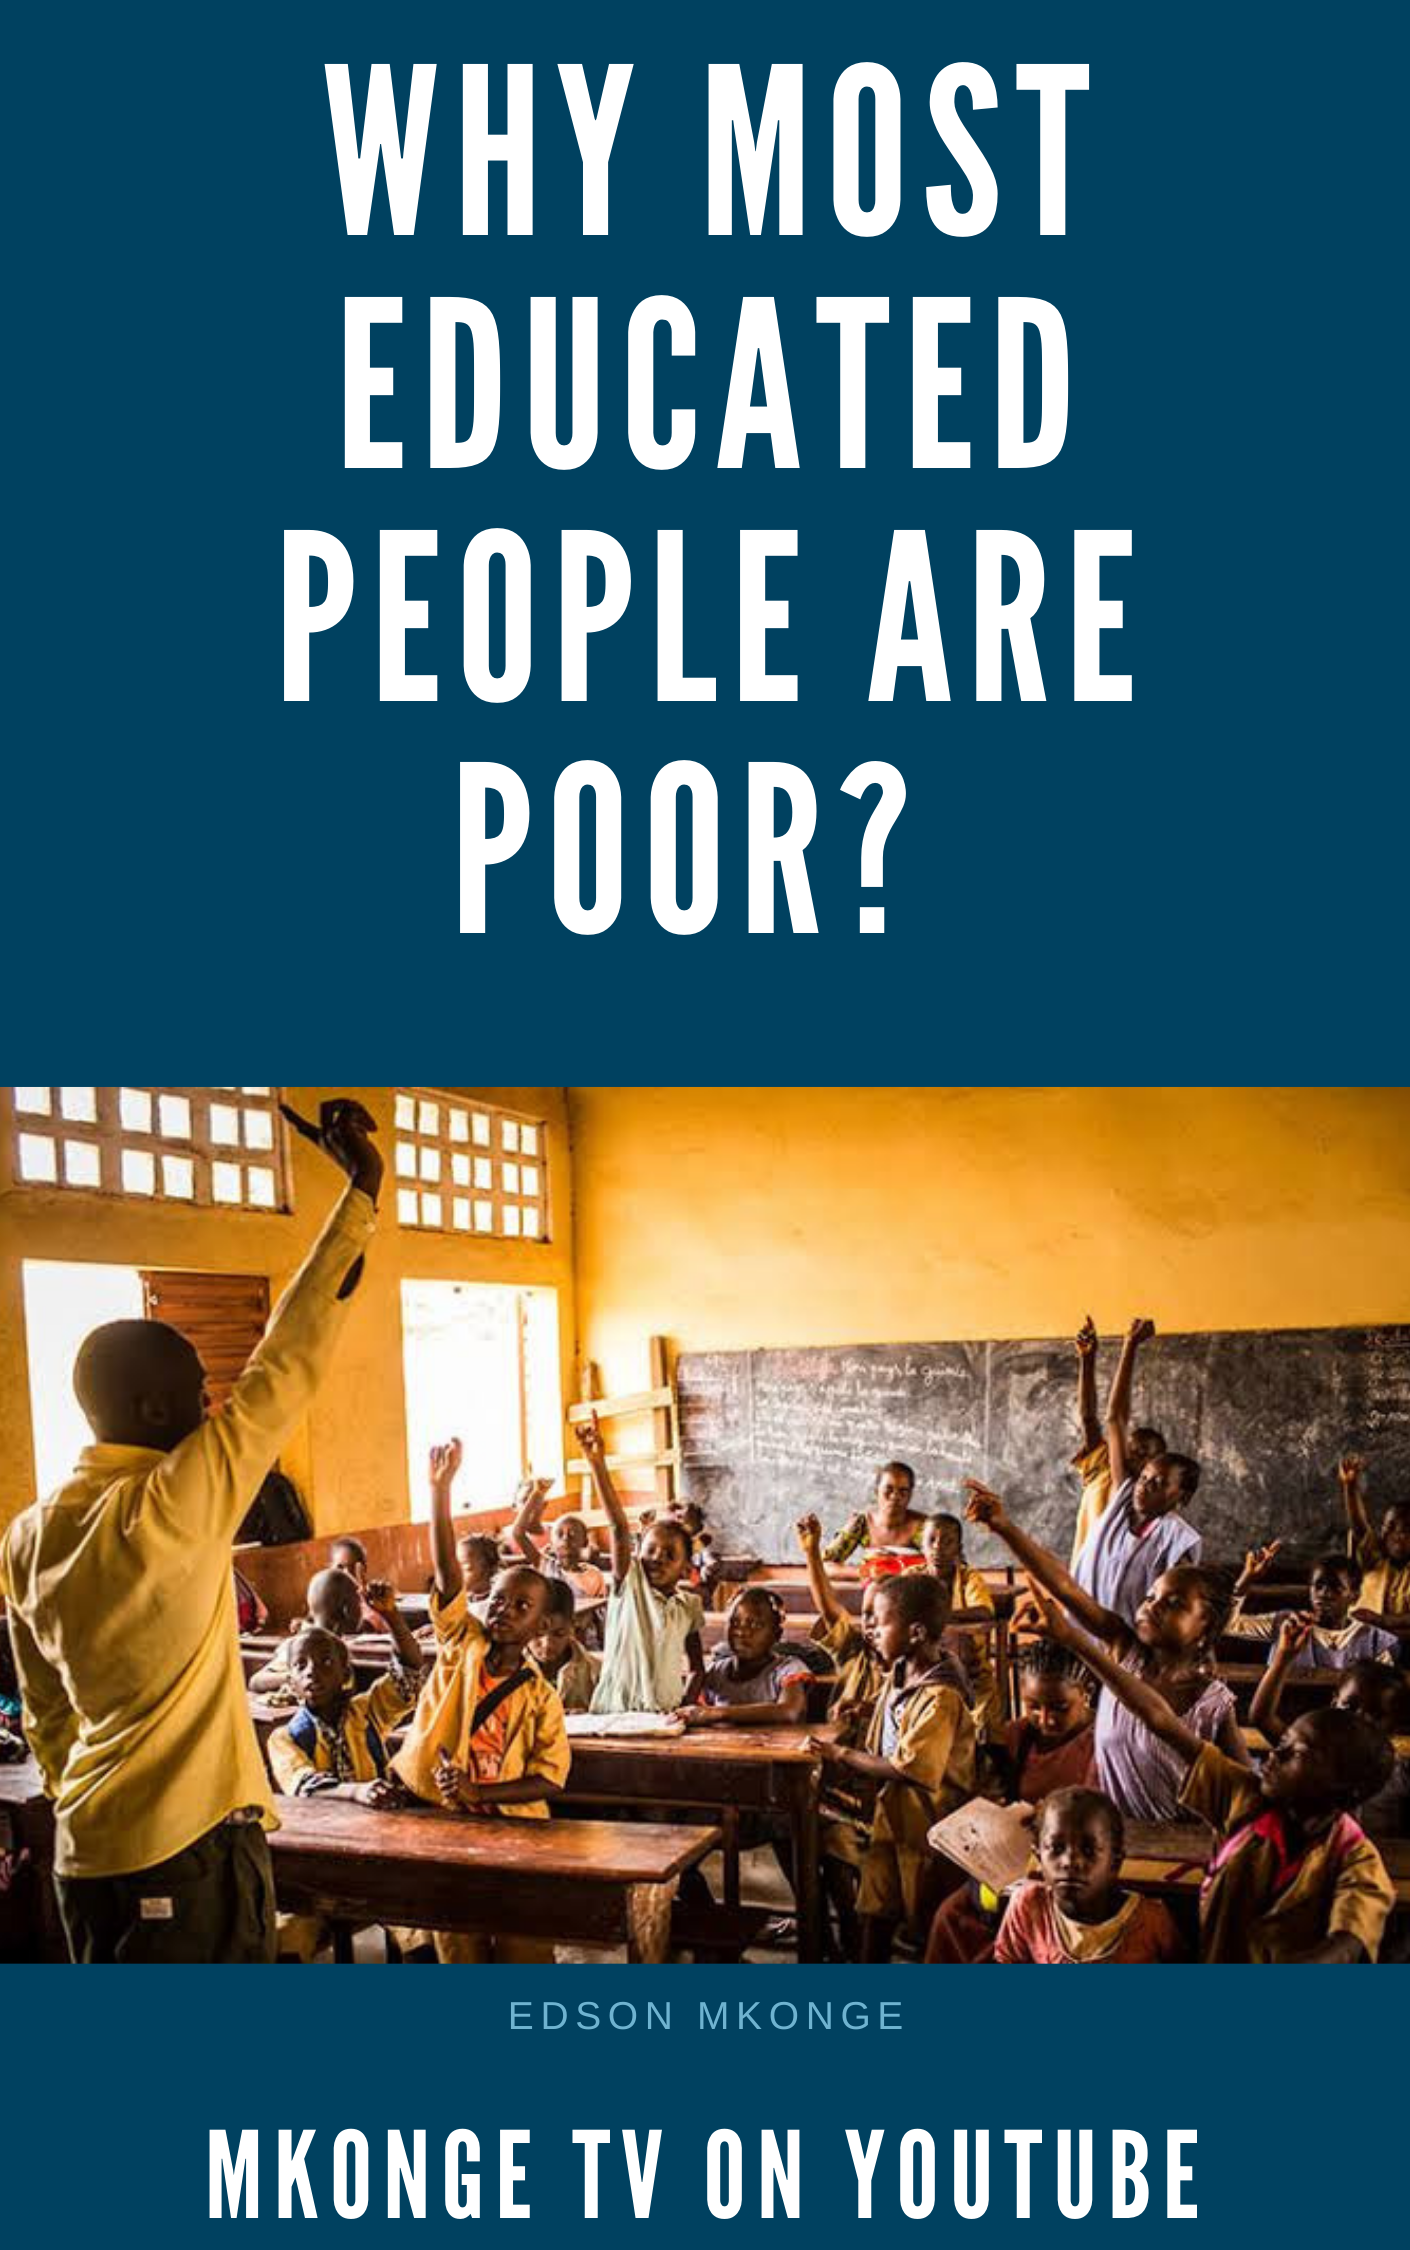 WHY MOST EDUCATED PEOPLE ARE POOR?